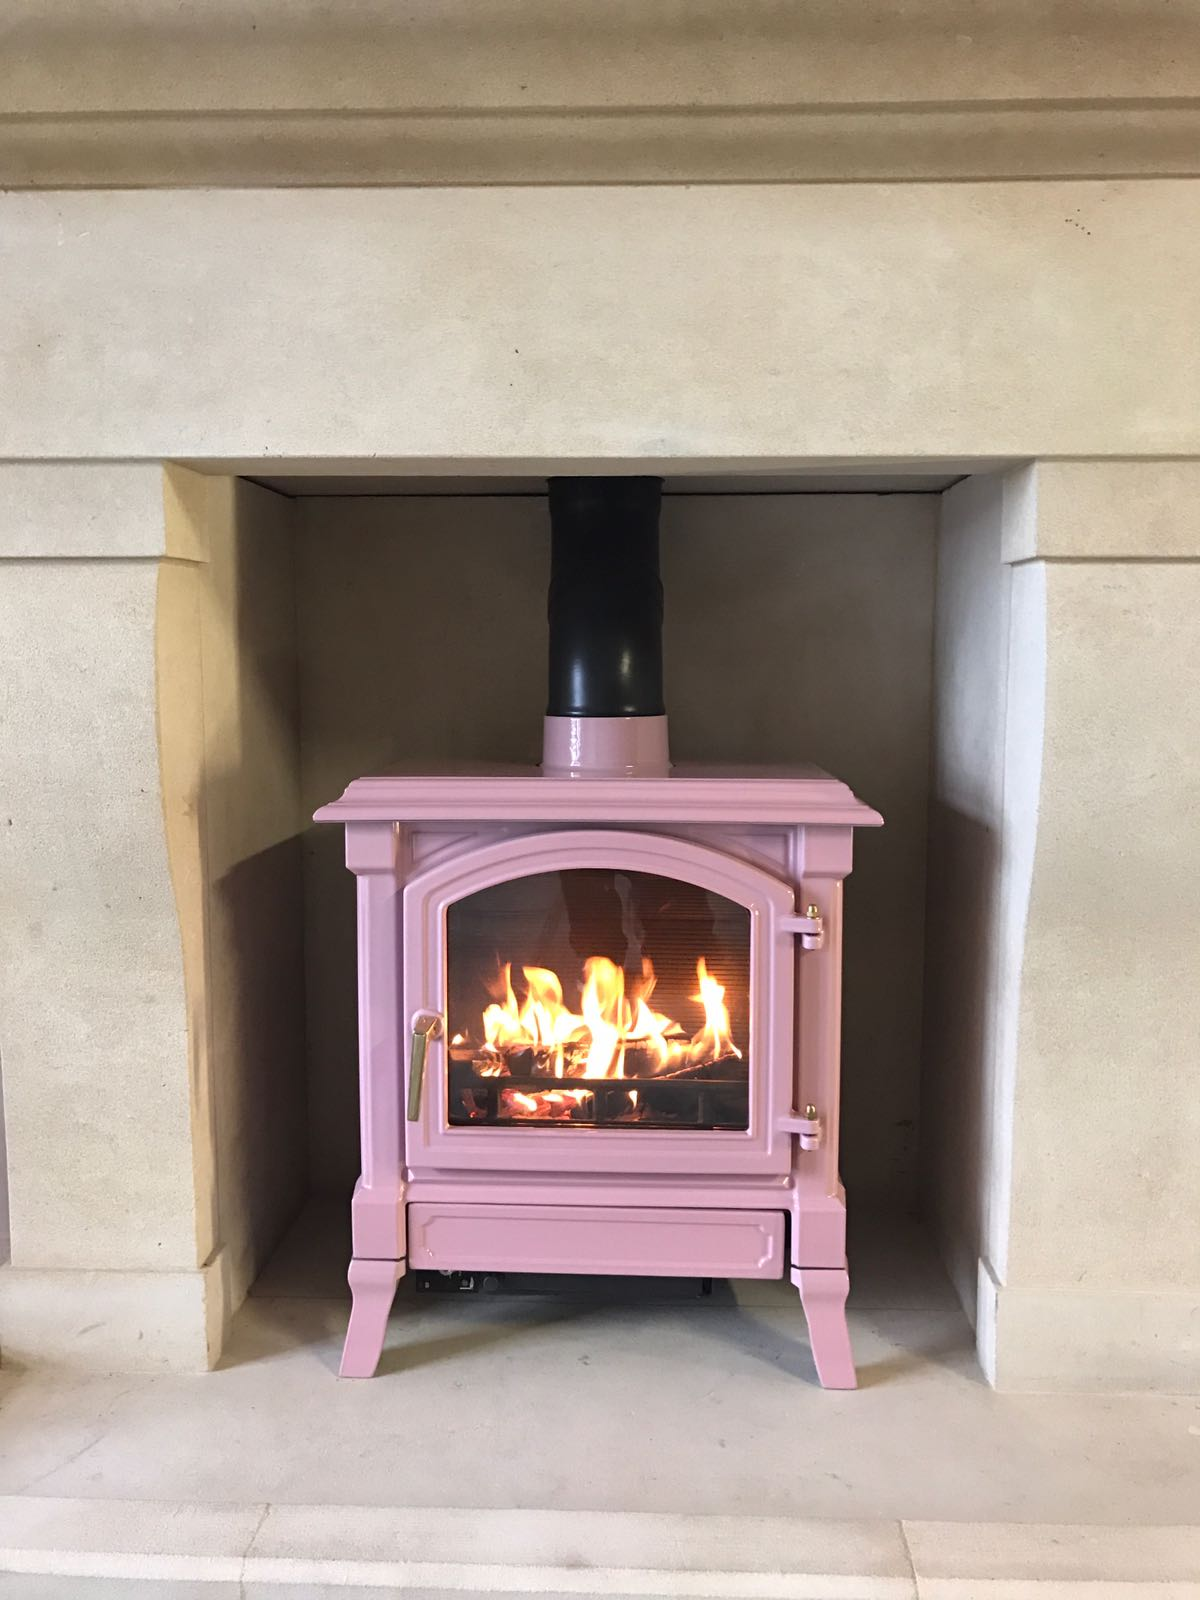 Poppy The Pink Nestor Martin Stove Is Lit In Time For